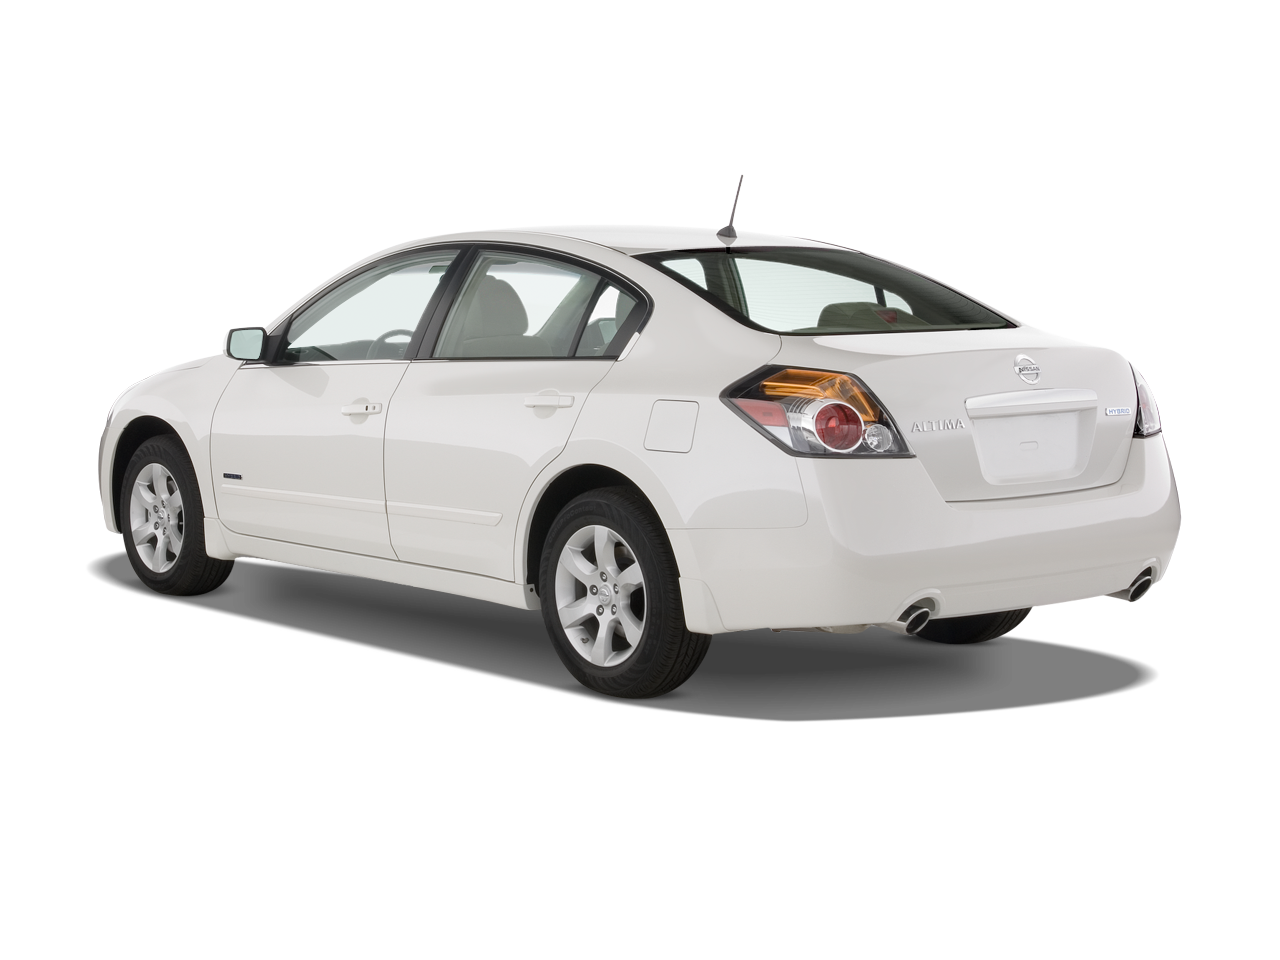 2014 Altima 2 Door Html Autos Post